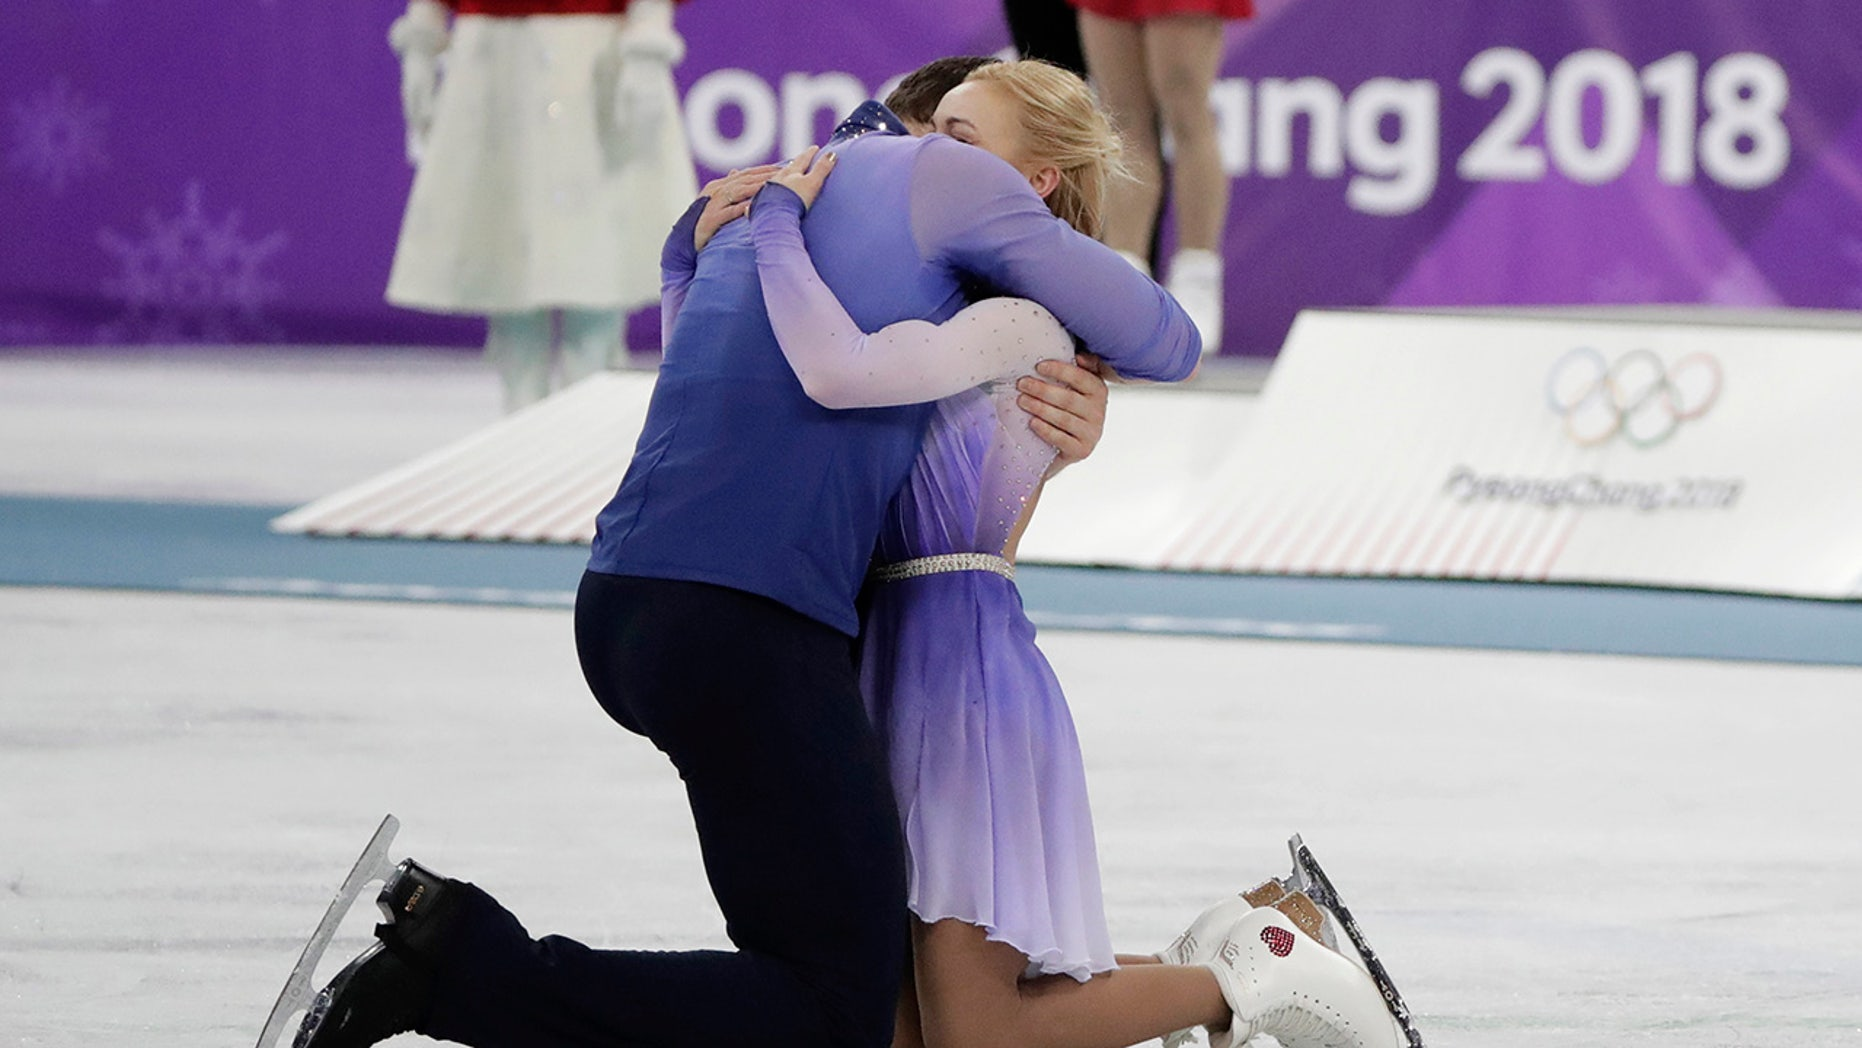 Aljona Savchenko and Bruno Massot of Germany embrace as they celebrate during the venue ceremony after winning the gold medal in the pairs free skate figure skating final in the Gangneung Ice Arena at the 2018 Winter Olympics in Gangneung, South Korea, Thursday, Feb. 15, 2018.